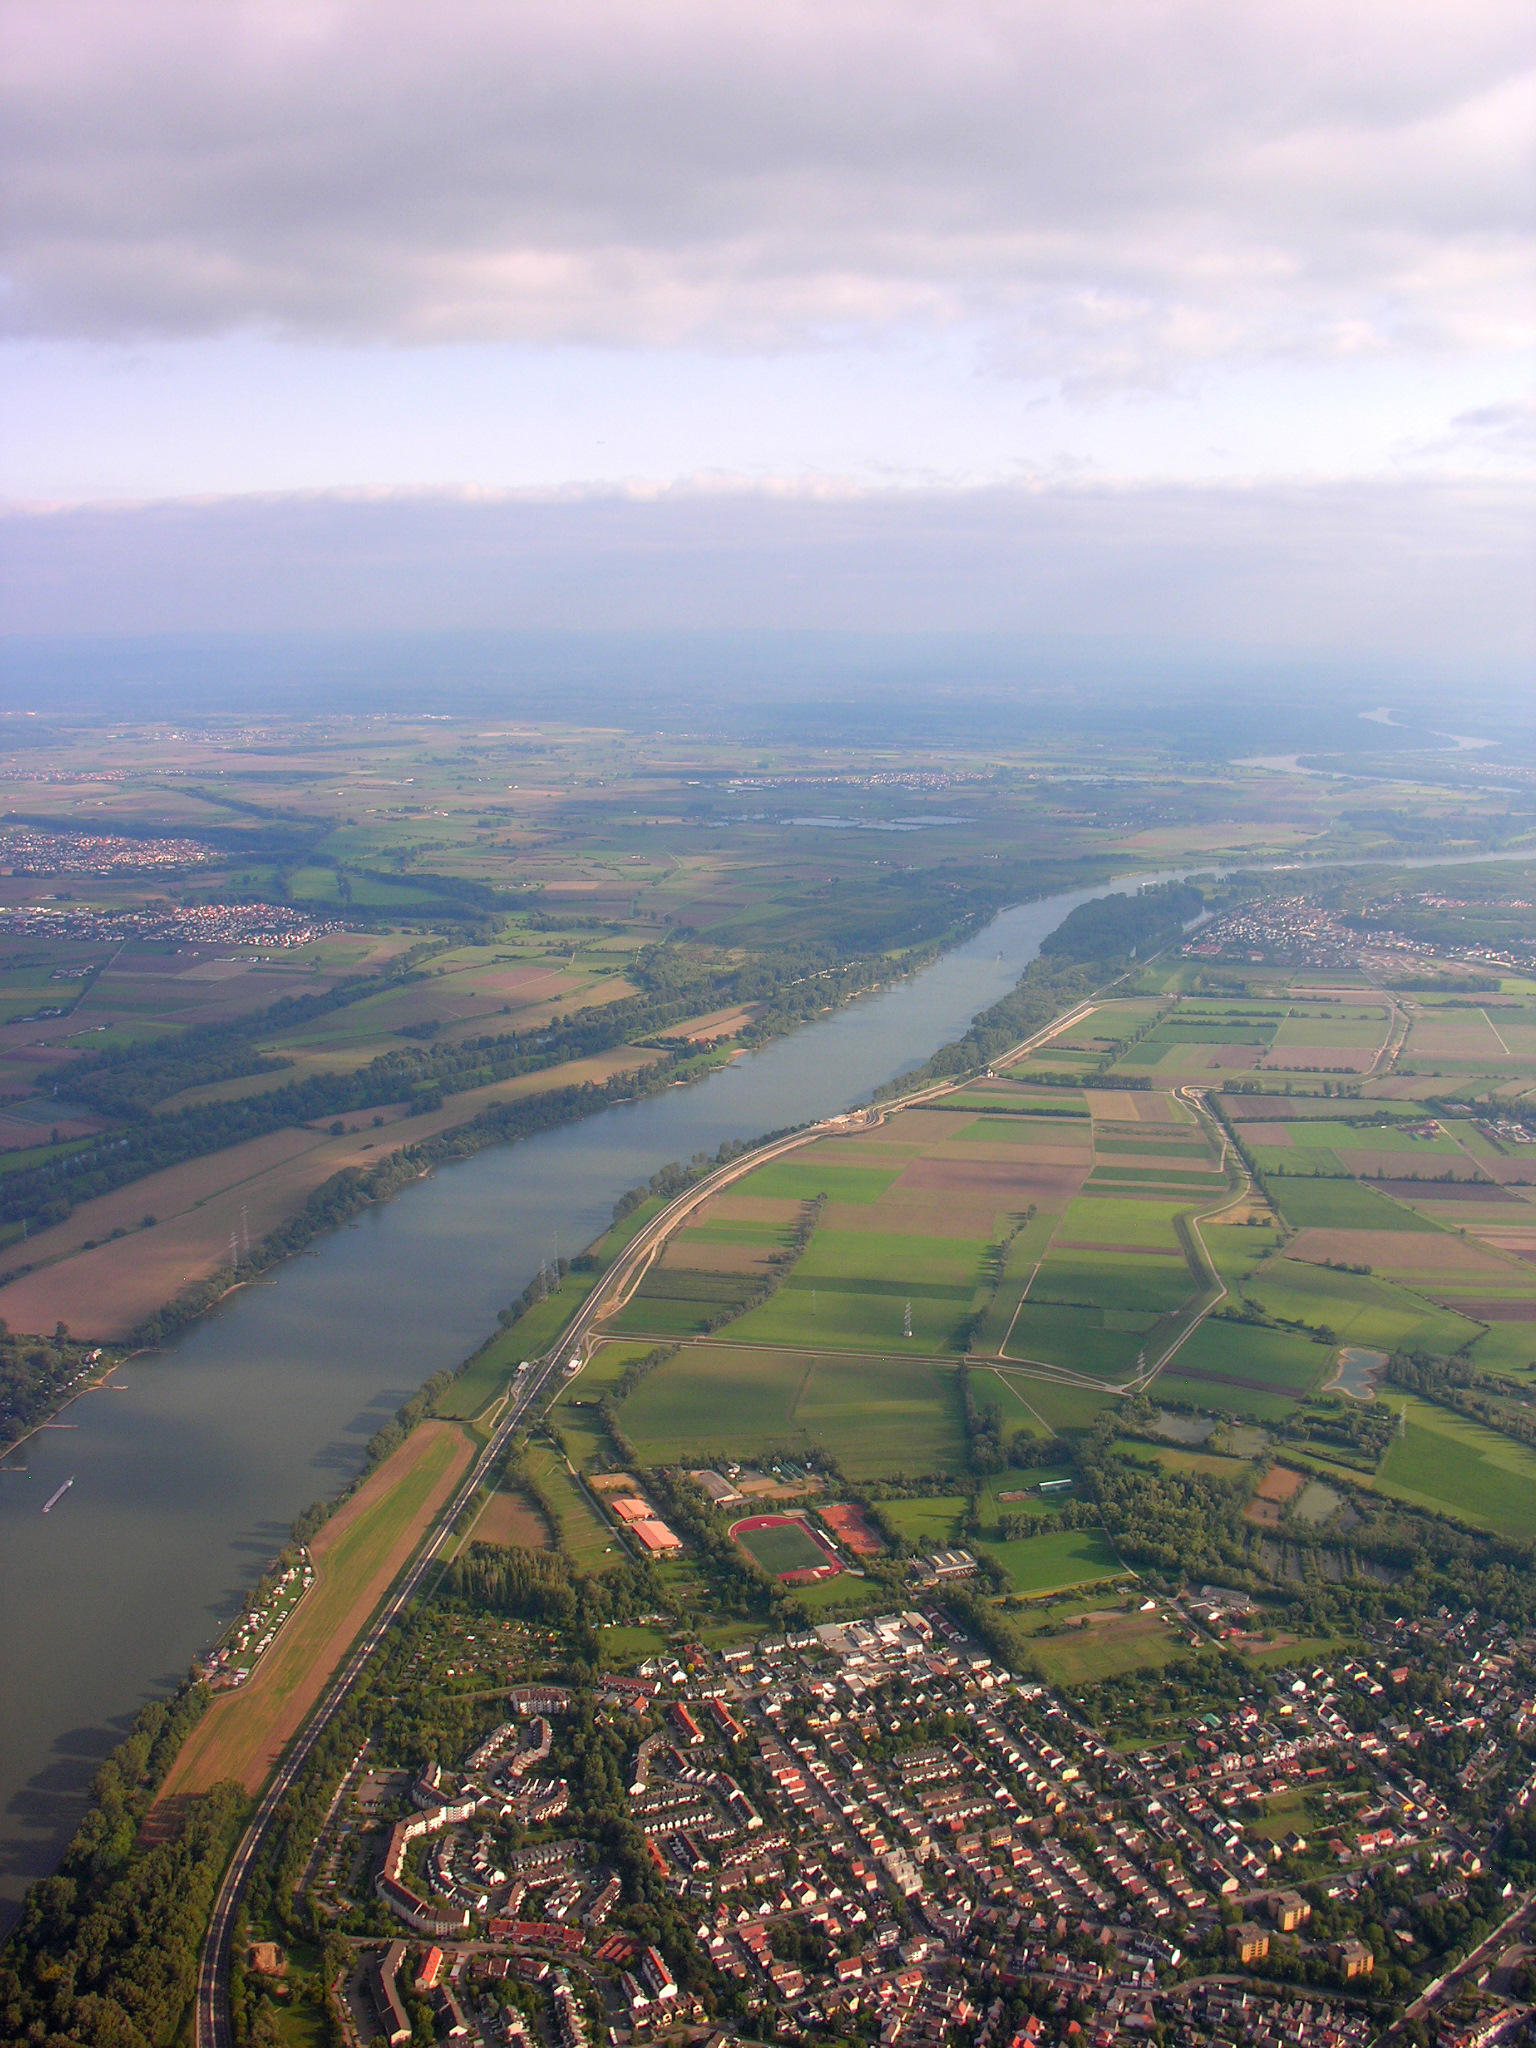 Aerial_View_of_Mainz-Laubenheim_14.09.2008_15-03-26.JPG